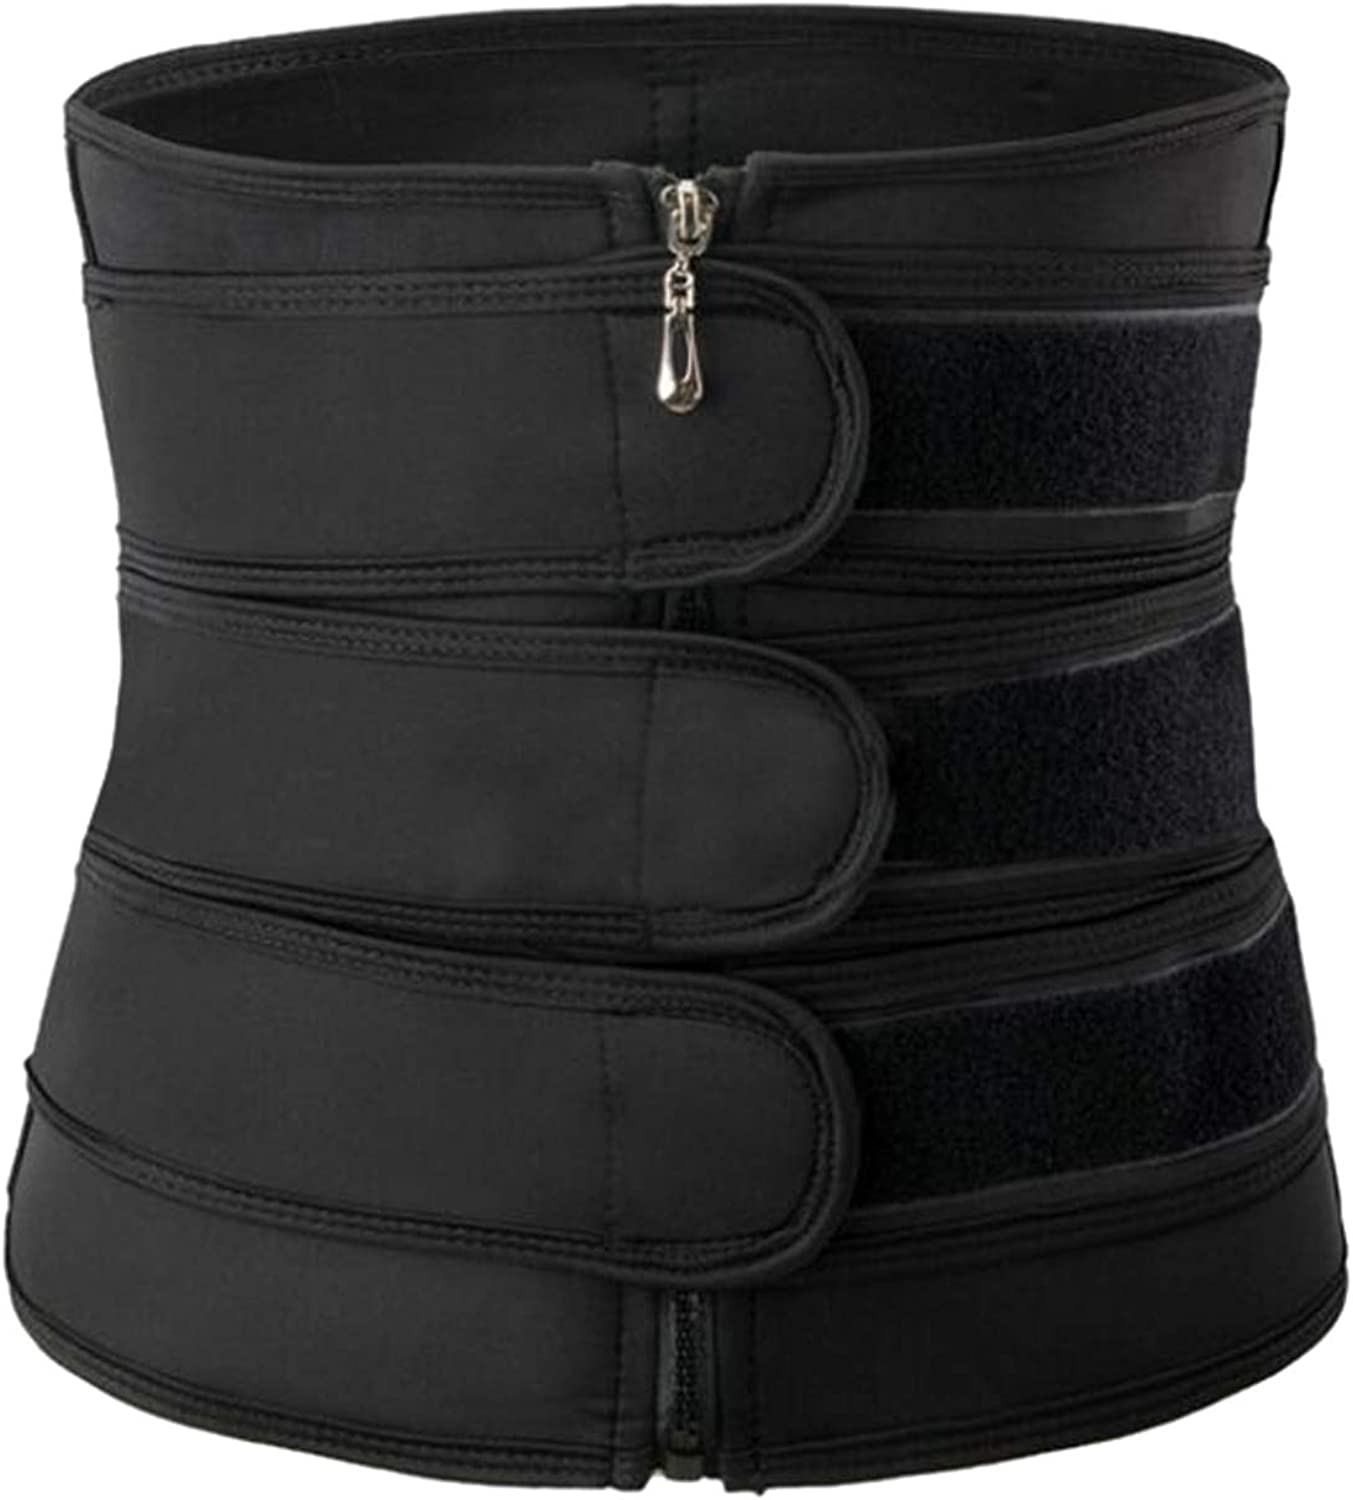 Women's Waist Trainer Corset Belt Cincher Shipping included Slimming Purchase Trimmer